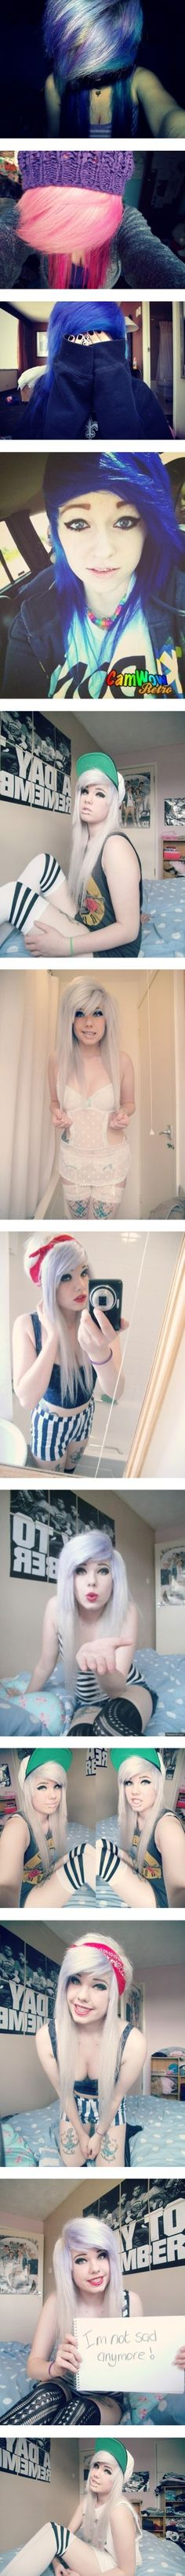 """Beautiful Girls and Emo Girls 3"" by hosenm ❤ liked on Polyvore"